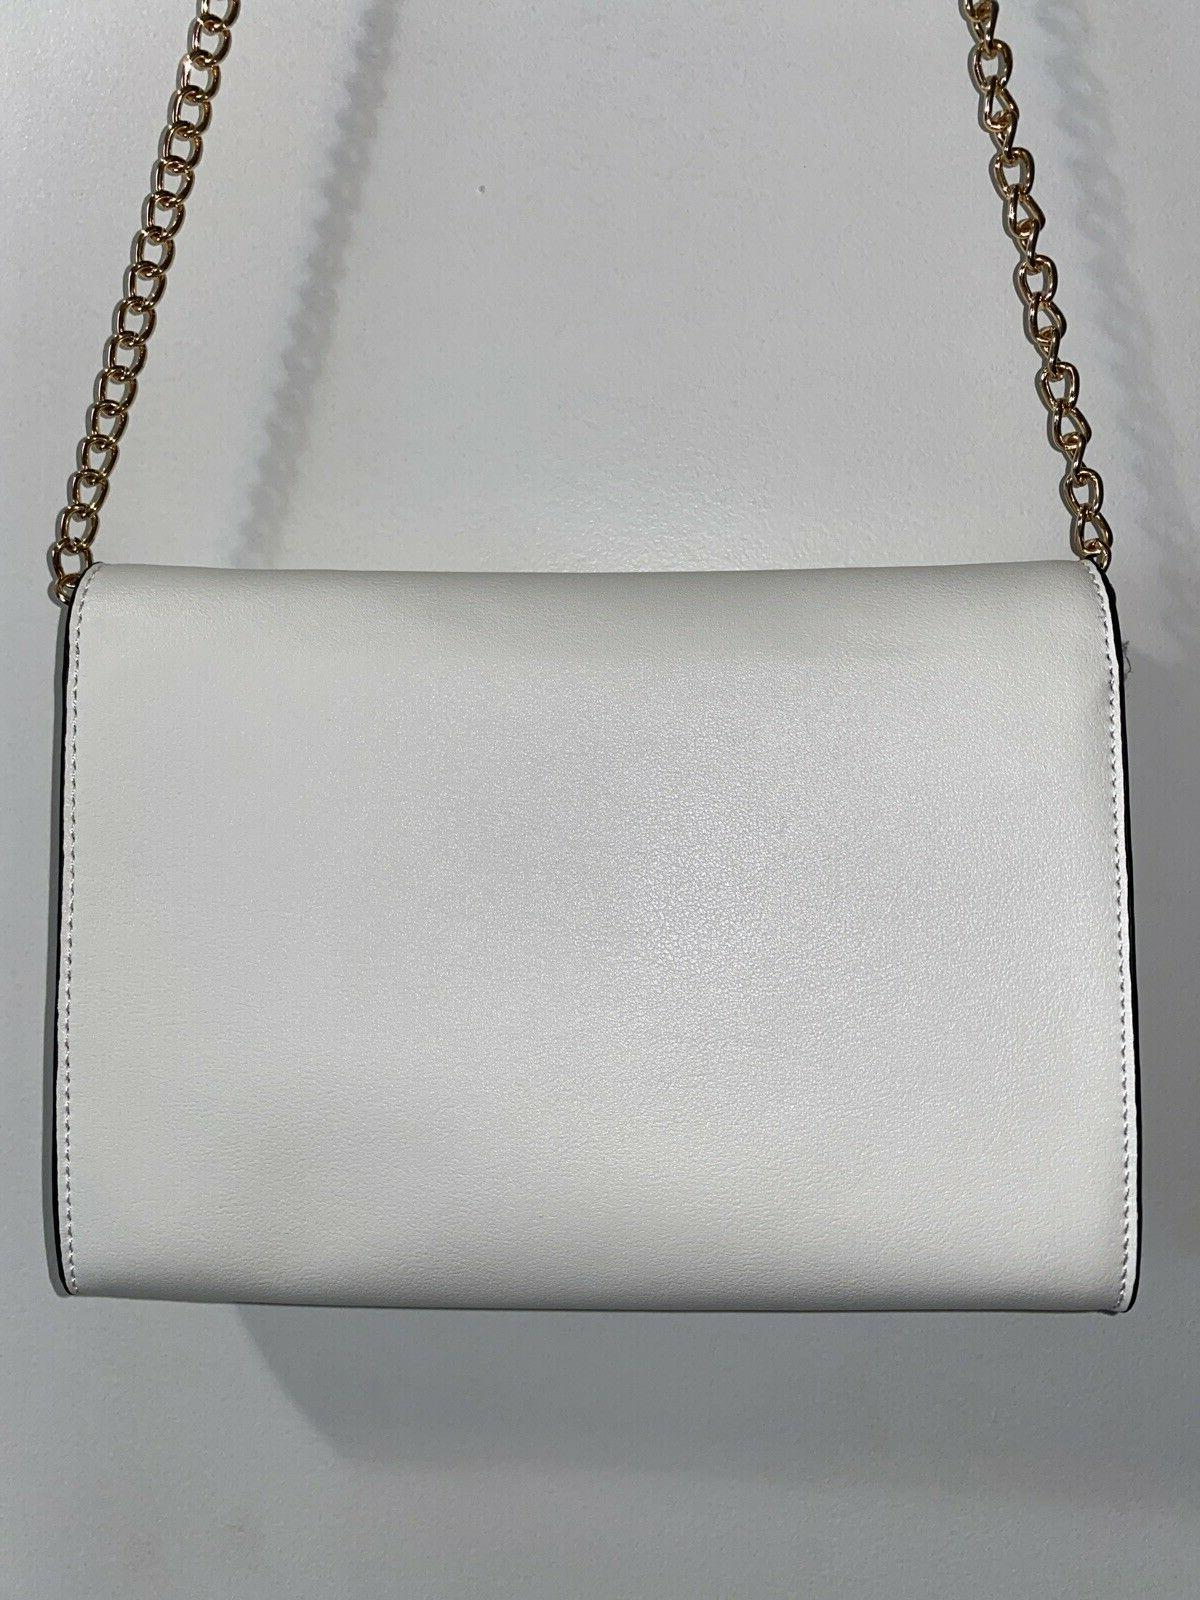 WOMEN'S PURSE LUXE-WHITE GOLD